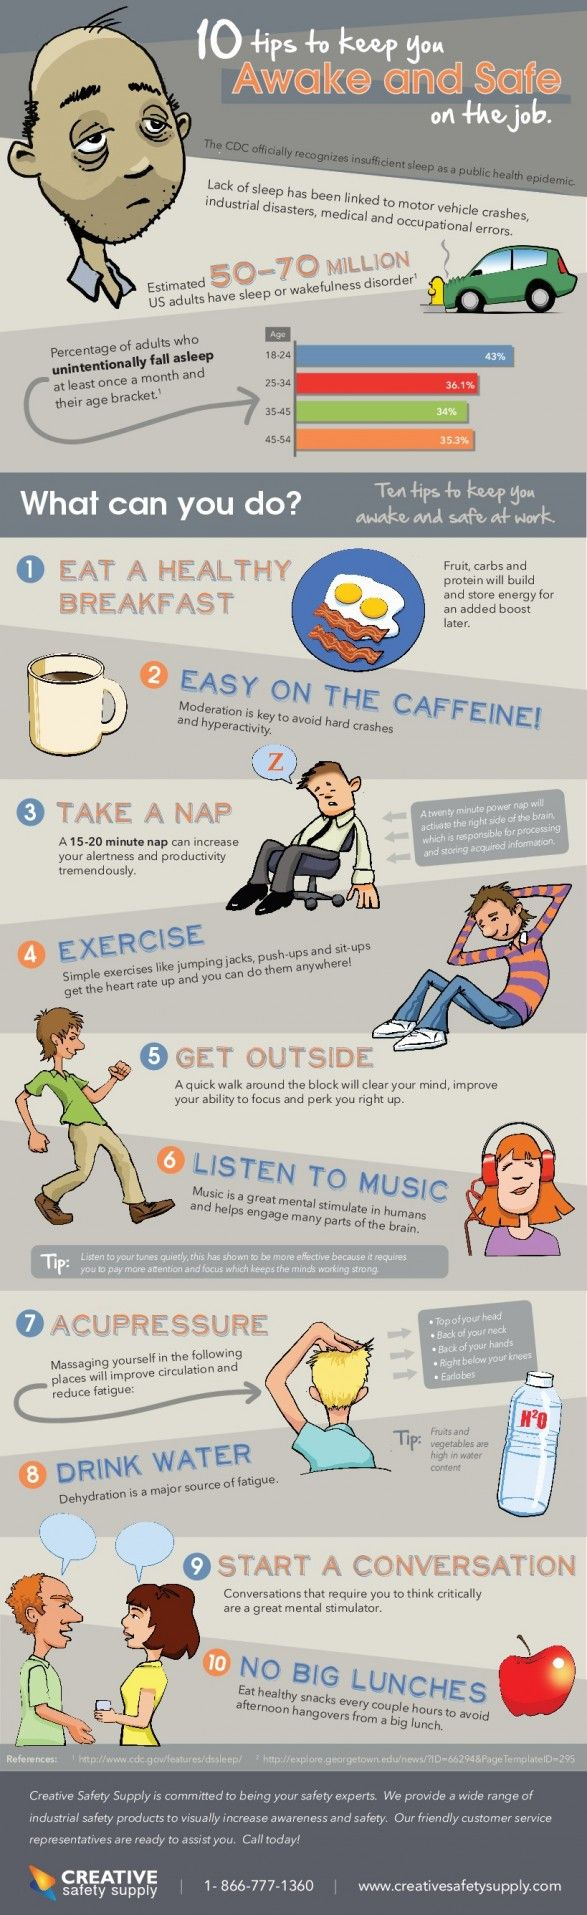 Safety tips for meetings